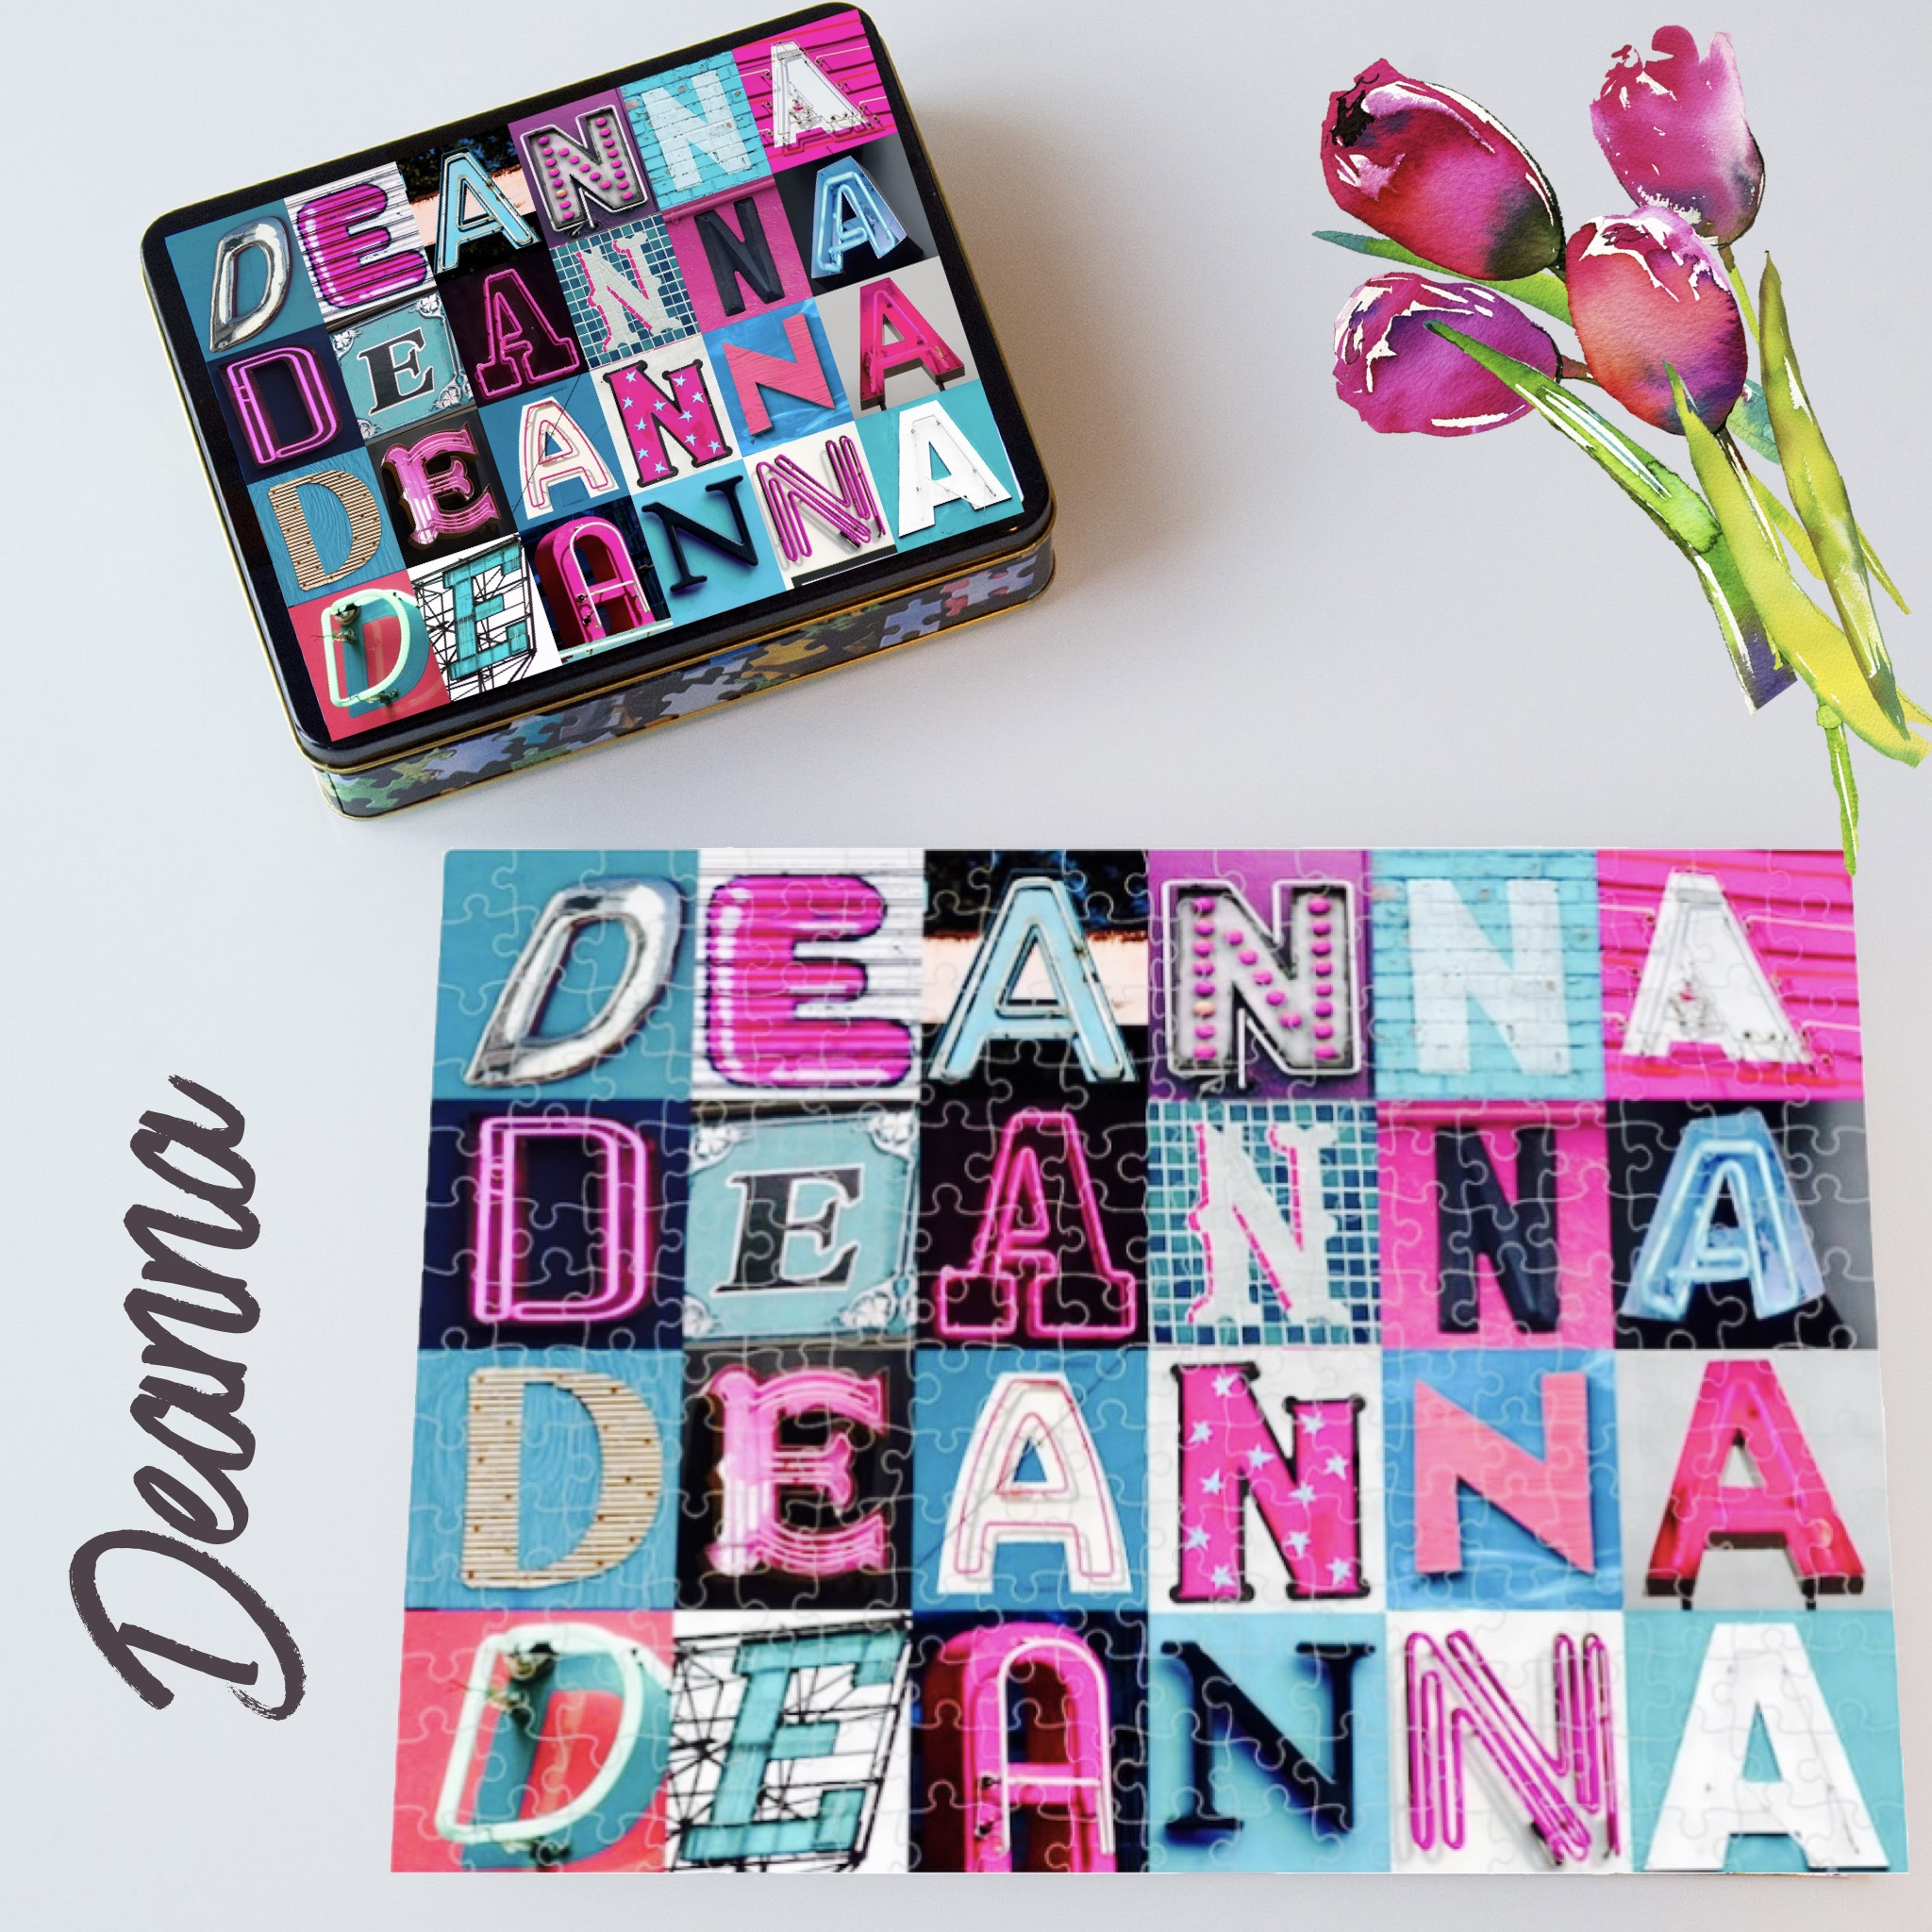 https://www.etsy.com/listing/521805293/personalized-puzzle-featuring-deanna-in?ref=shop_home_active_1